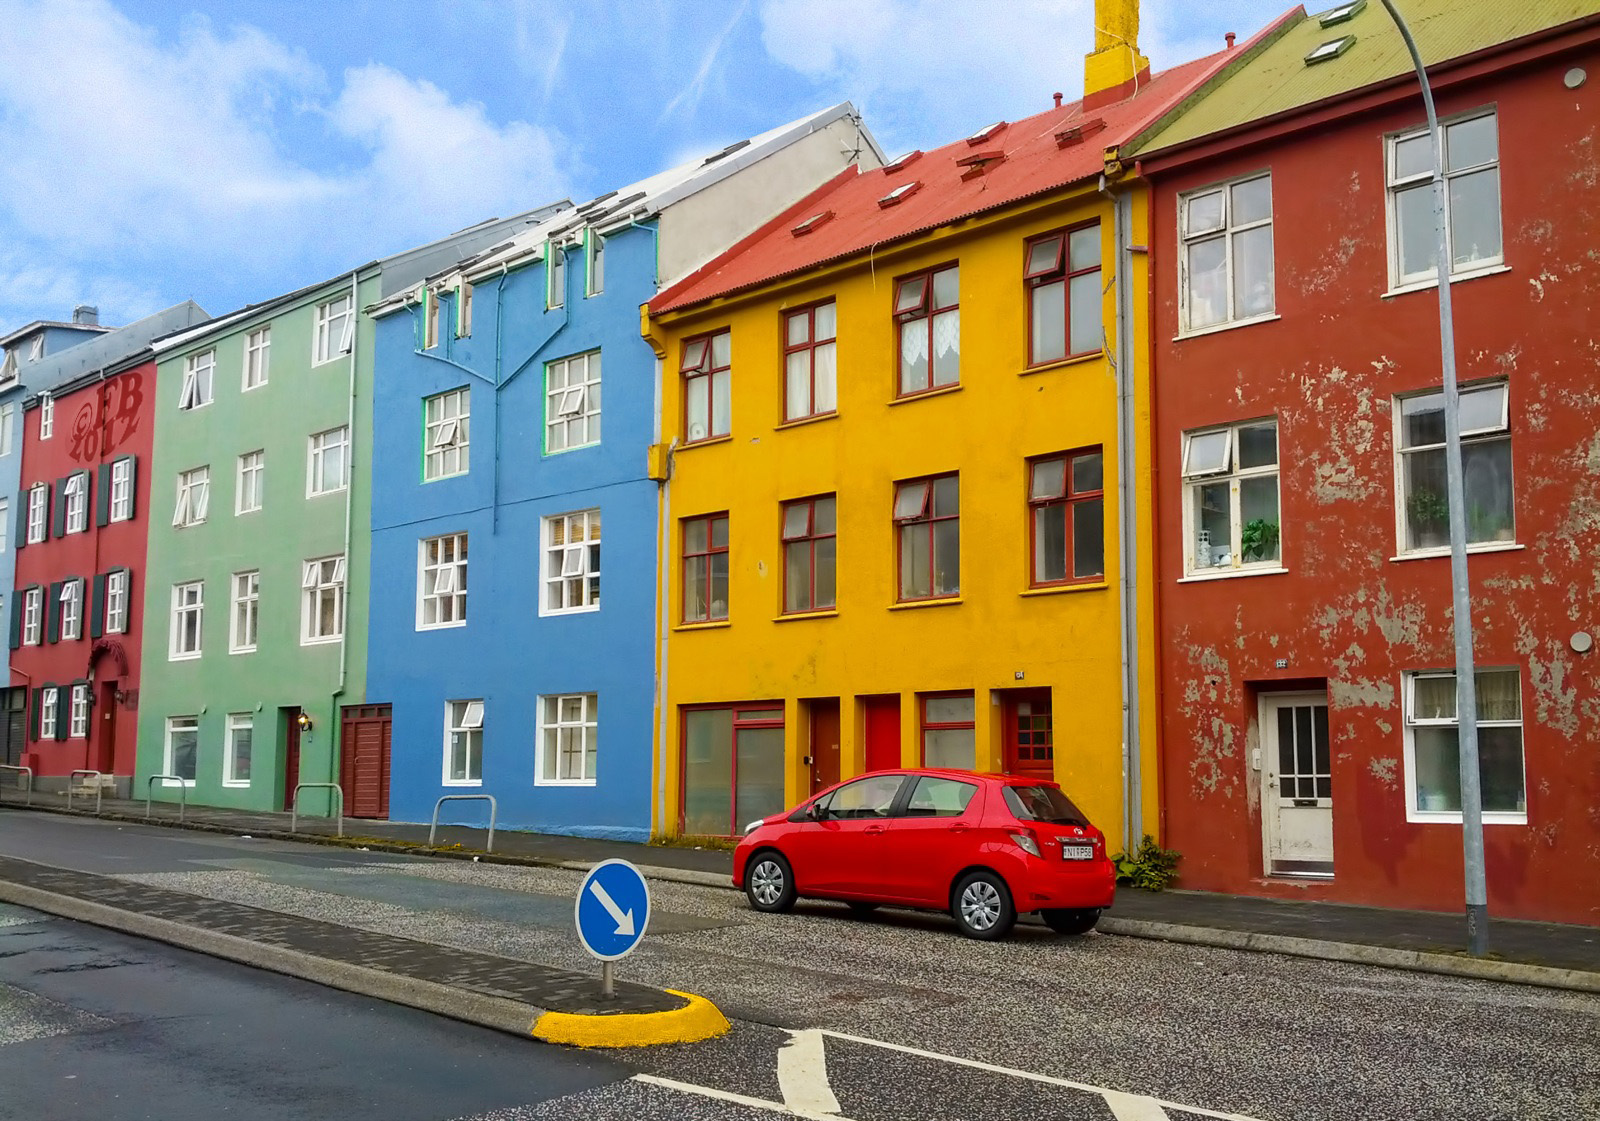 Iceland in Technicolor